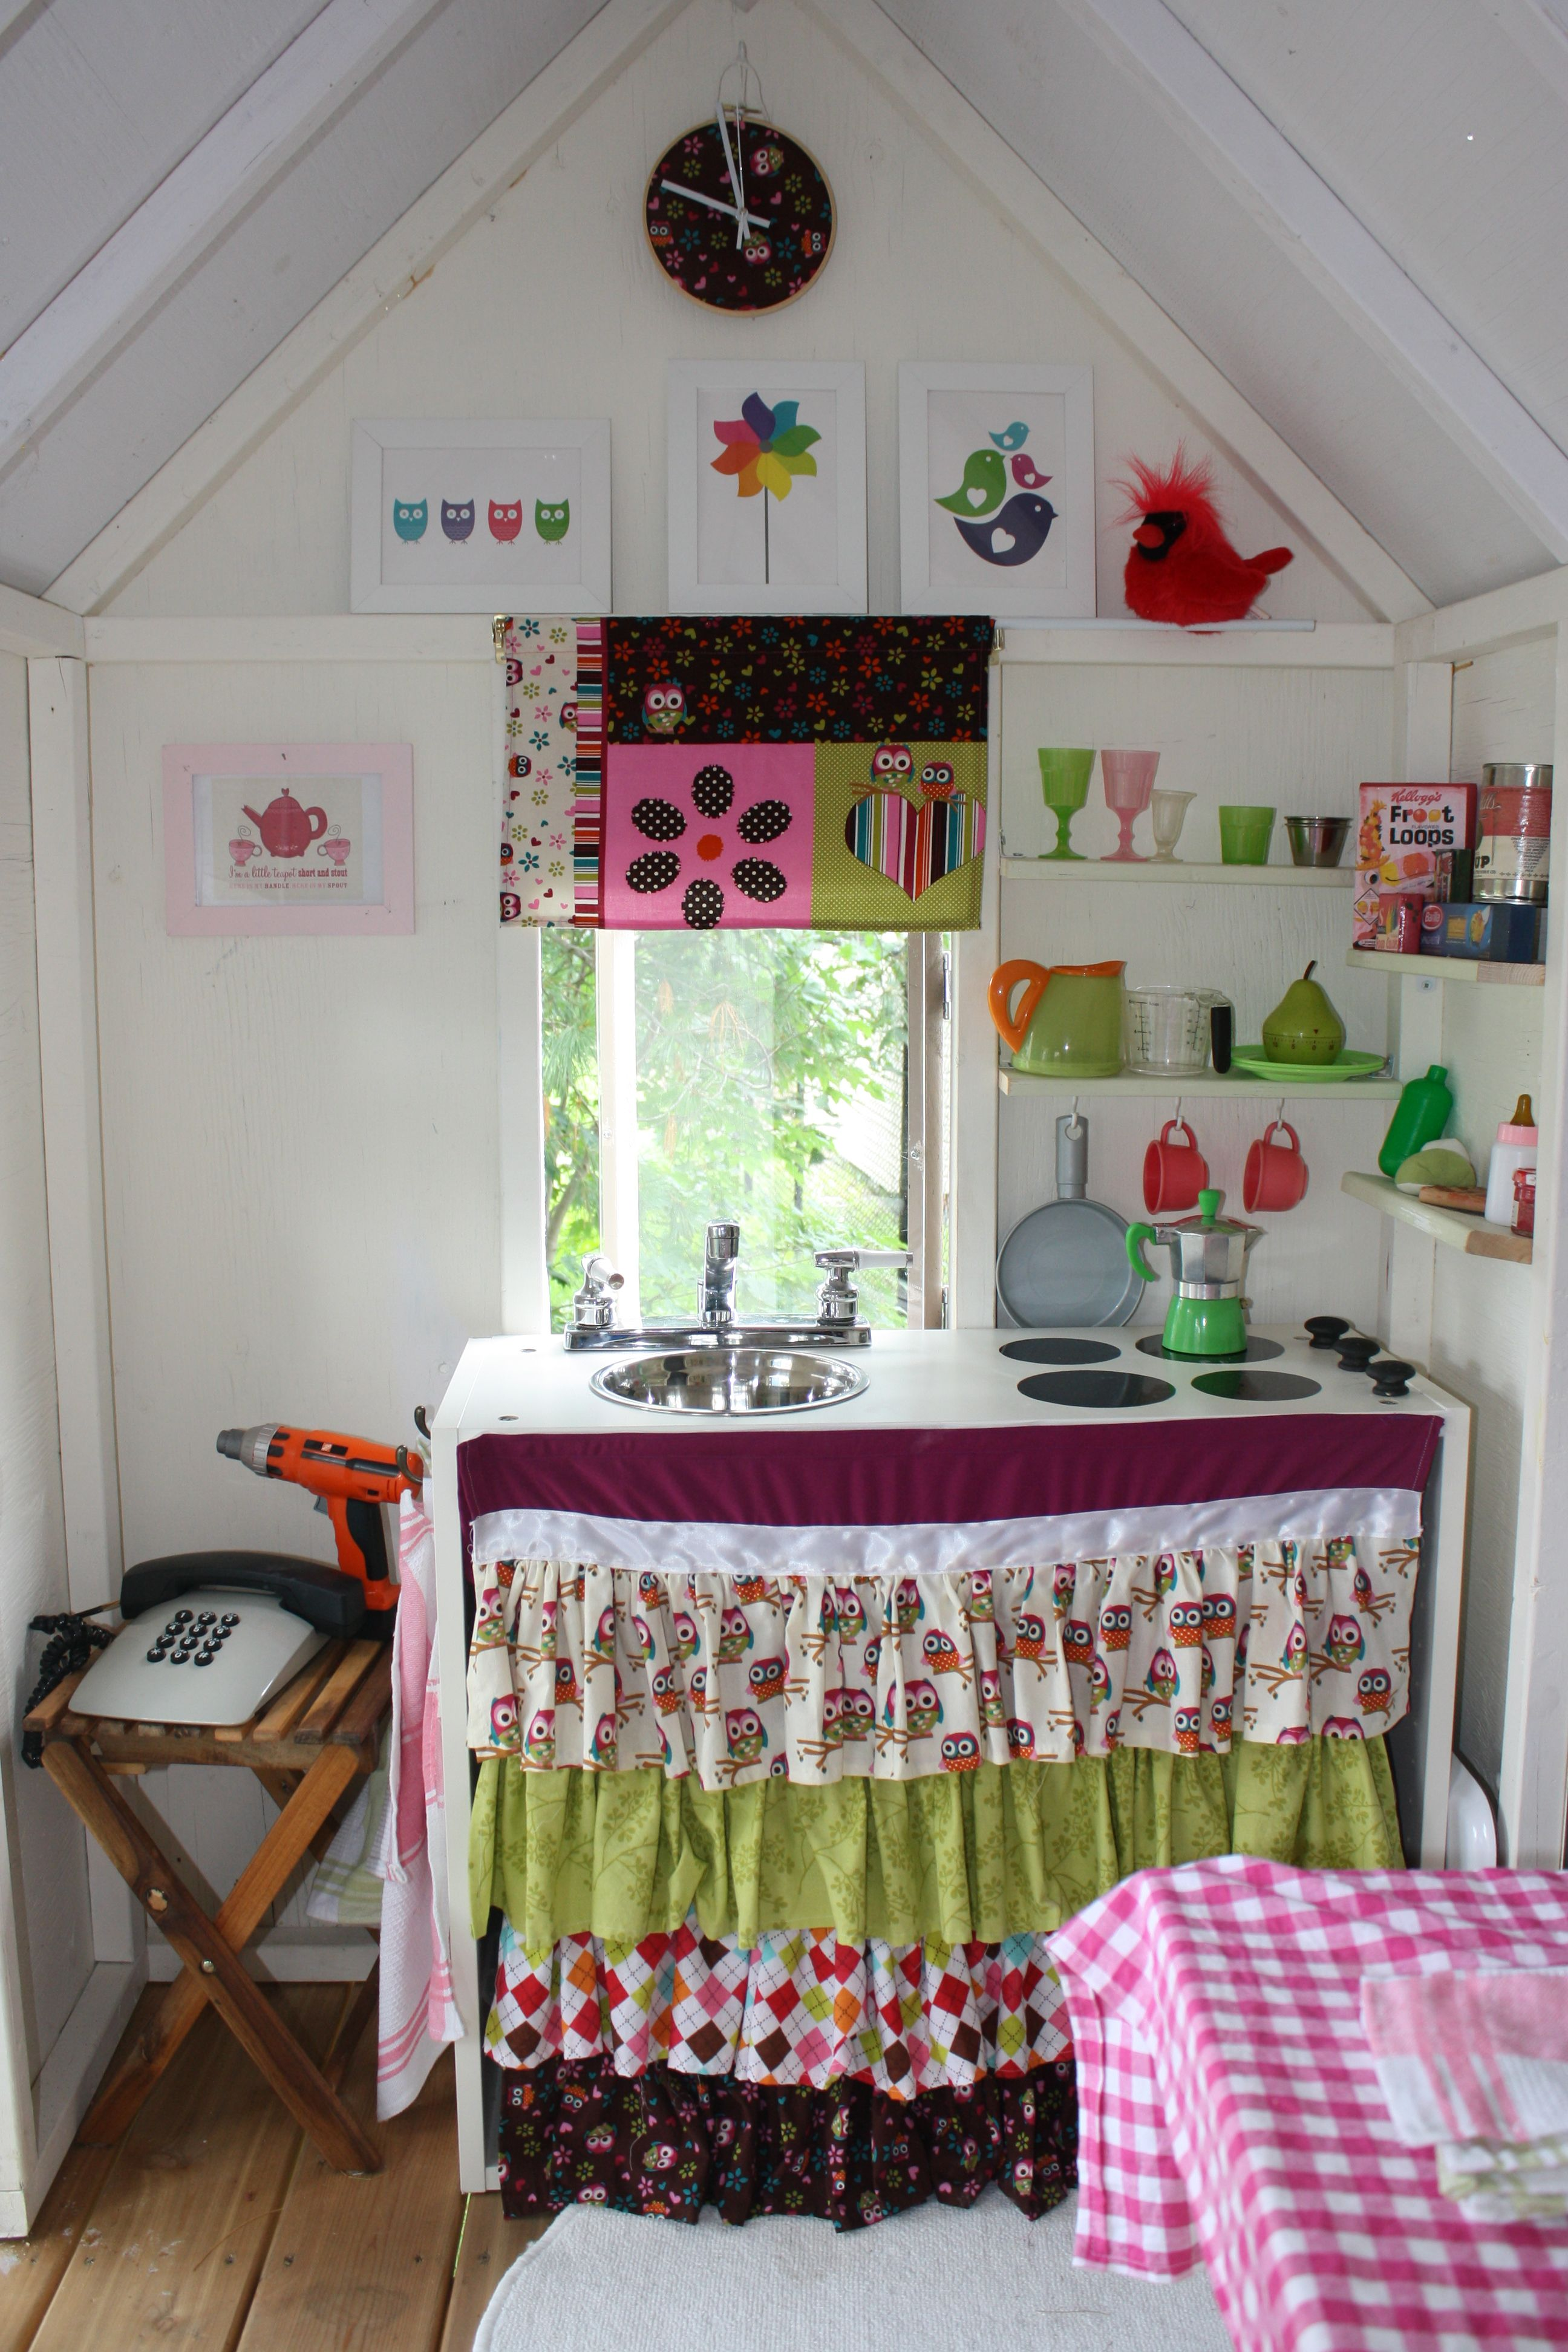 The playhouse project diy projects also best cubby house images garden tool storage inside rh pinterest